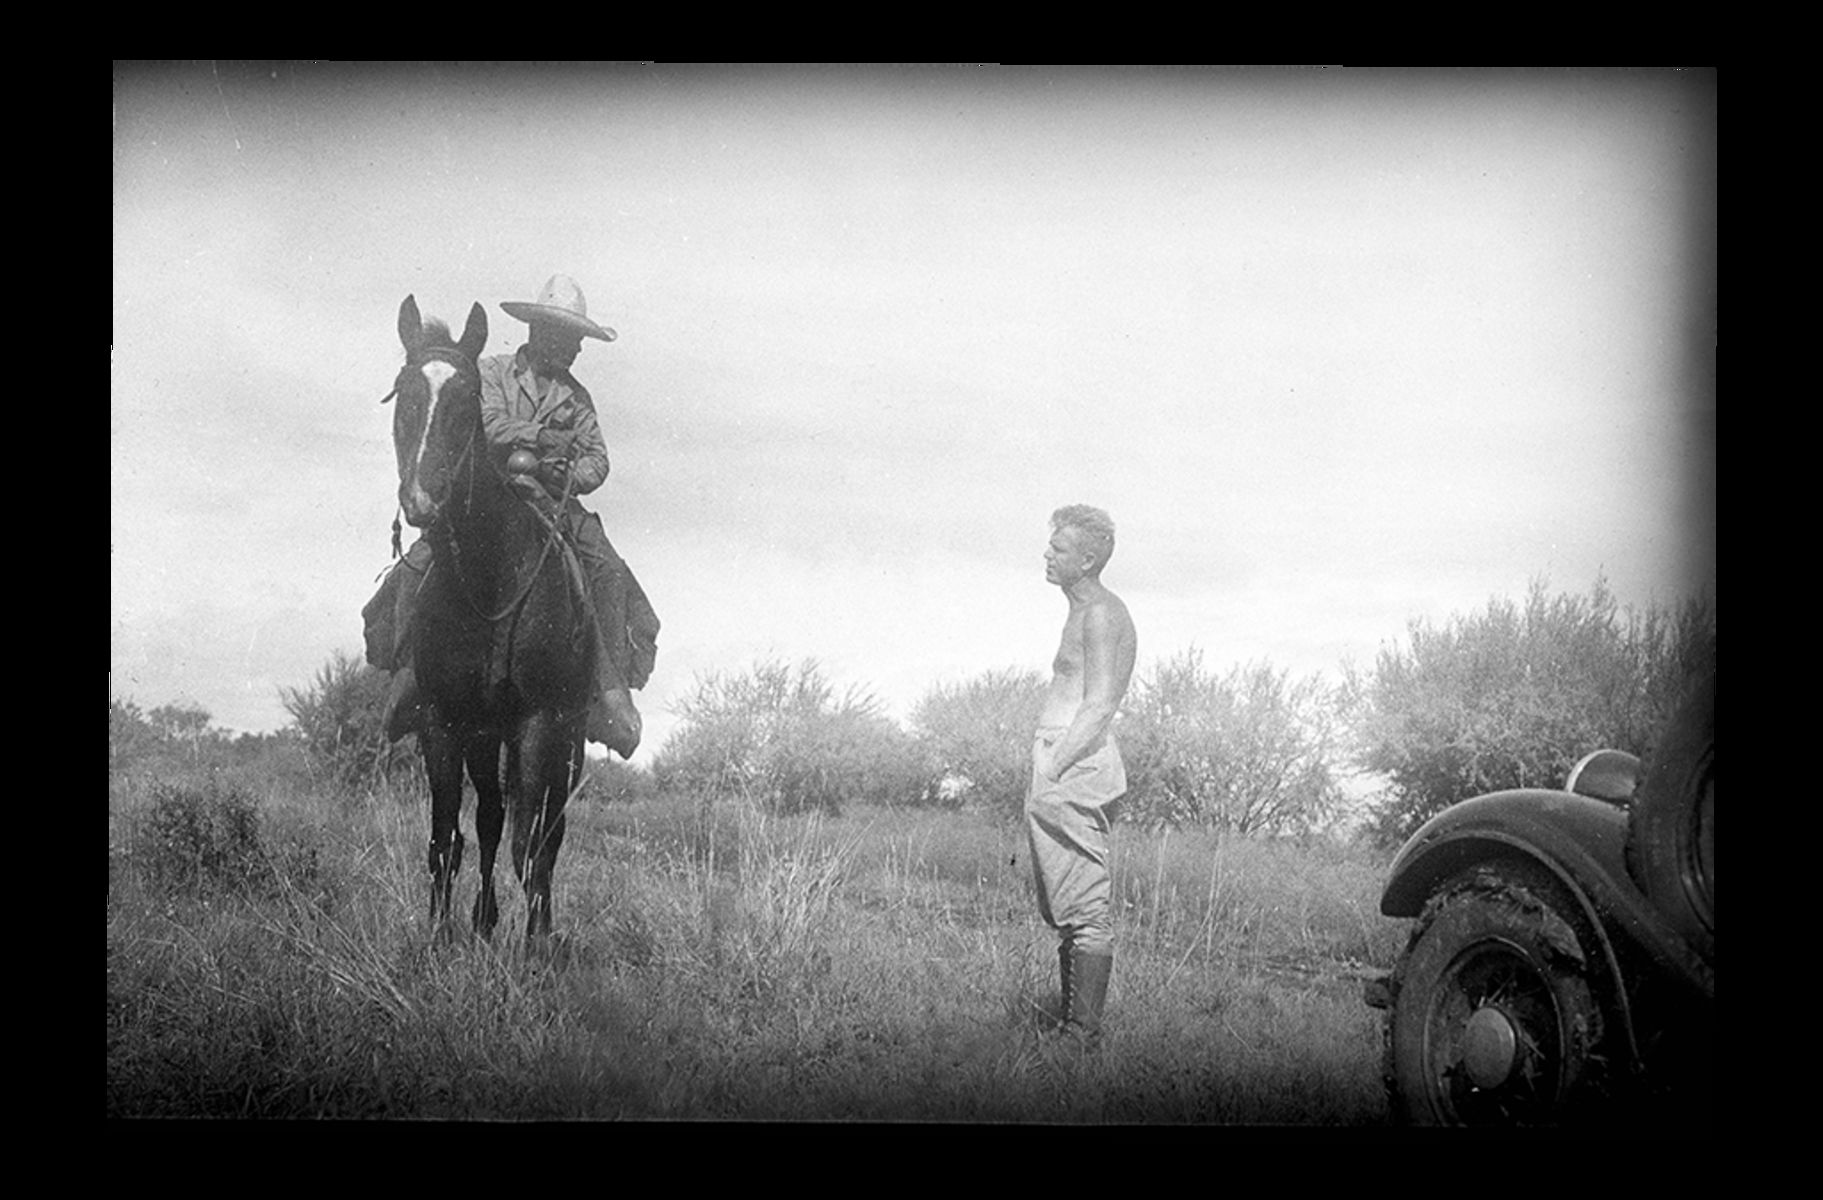 Alfred Kinsey talks with a man in a sombrero on horseback during a field trip to collect gall wasp specimens in North America.